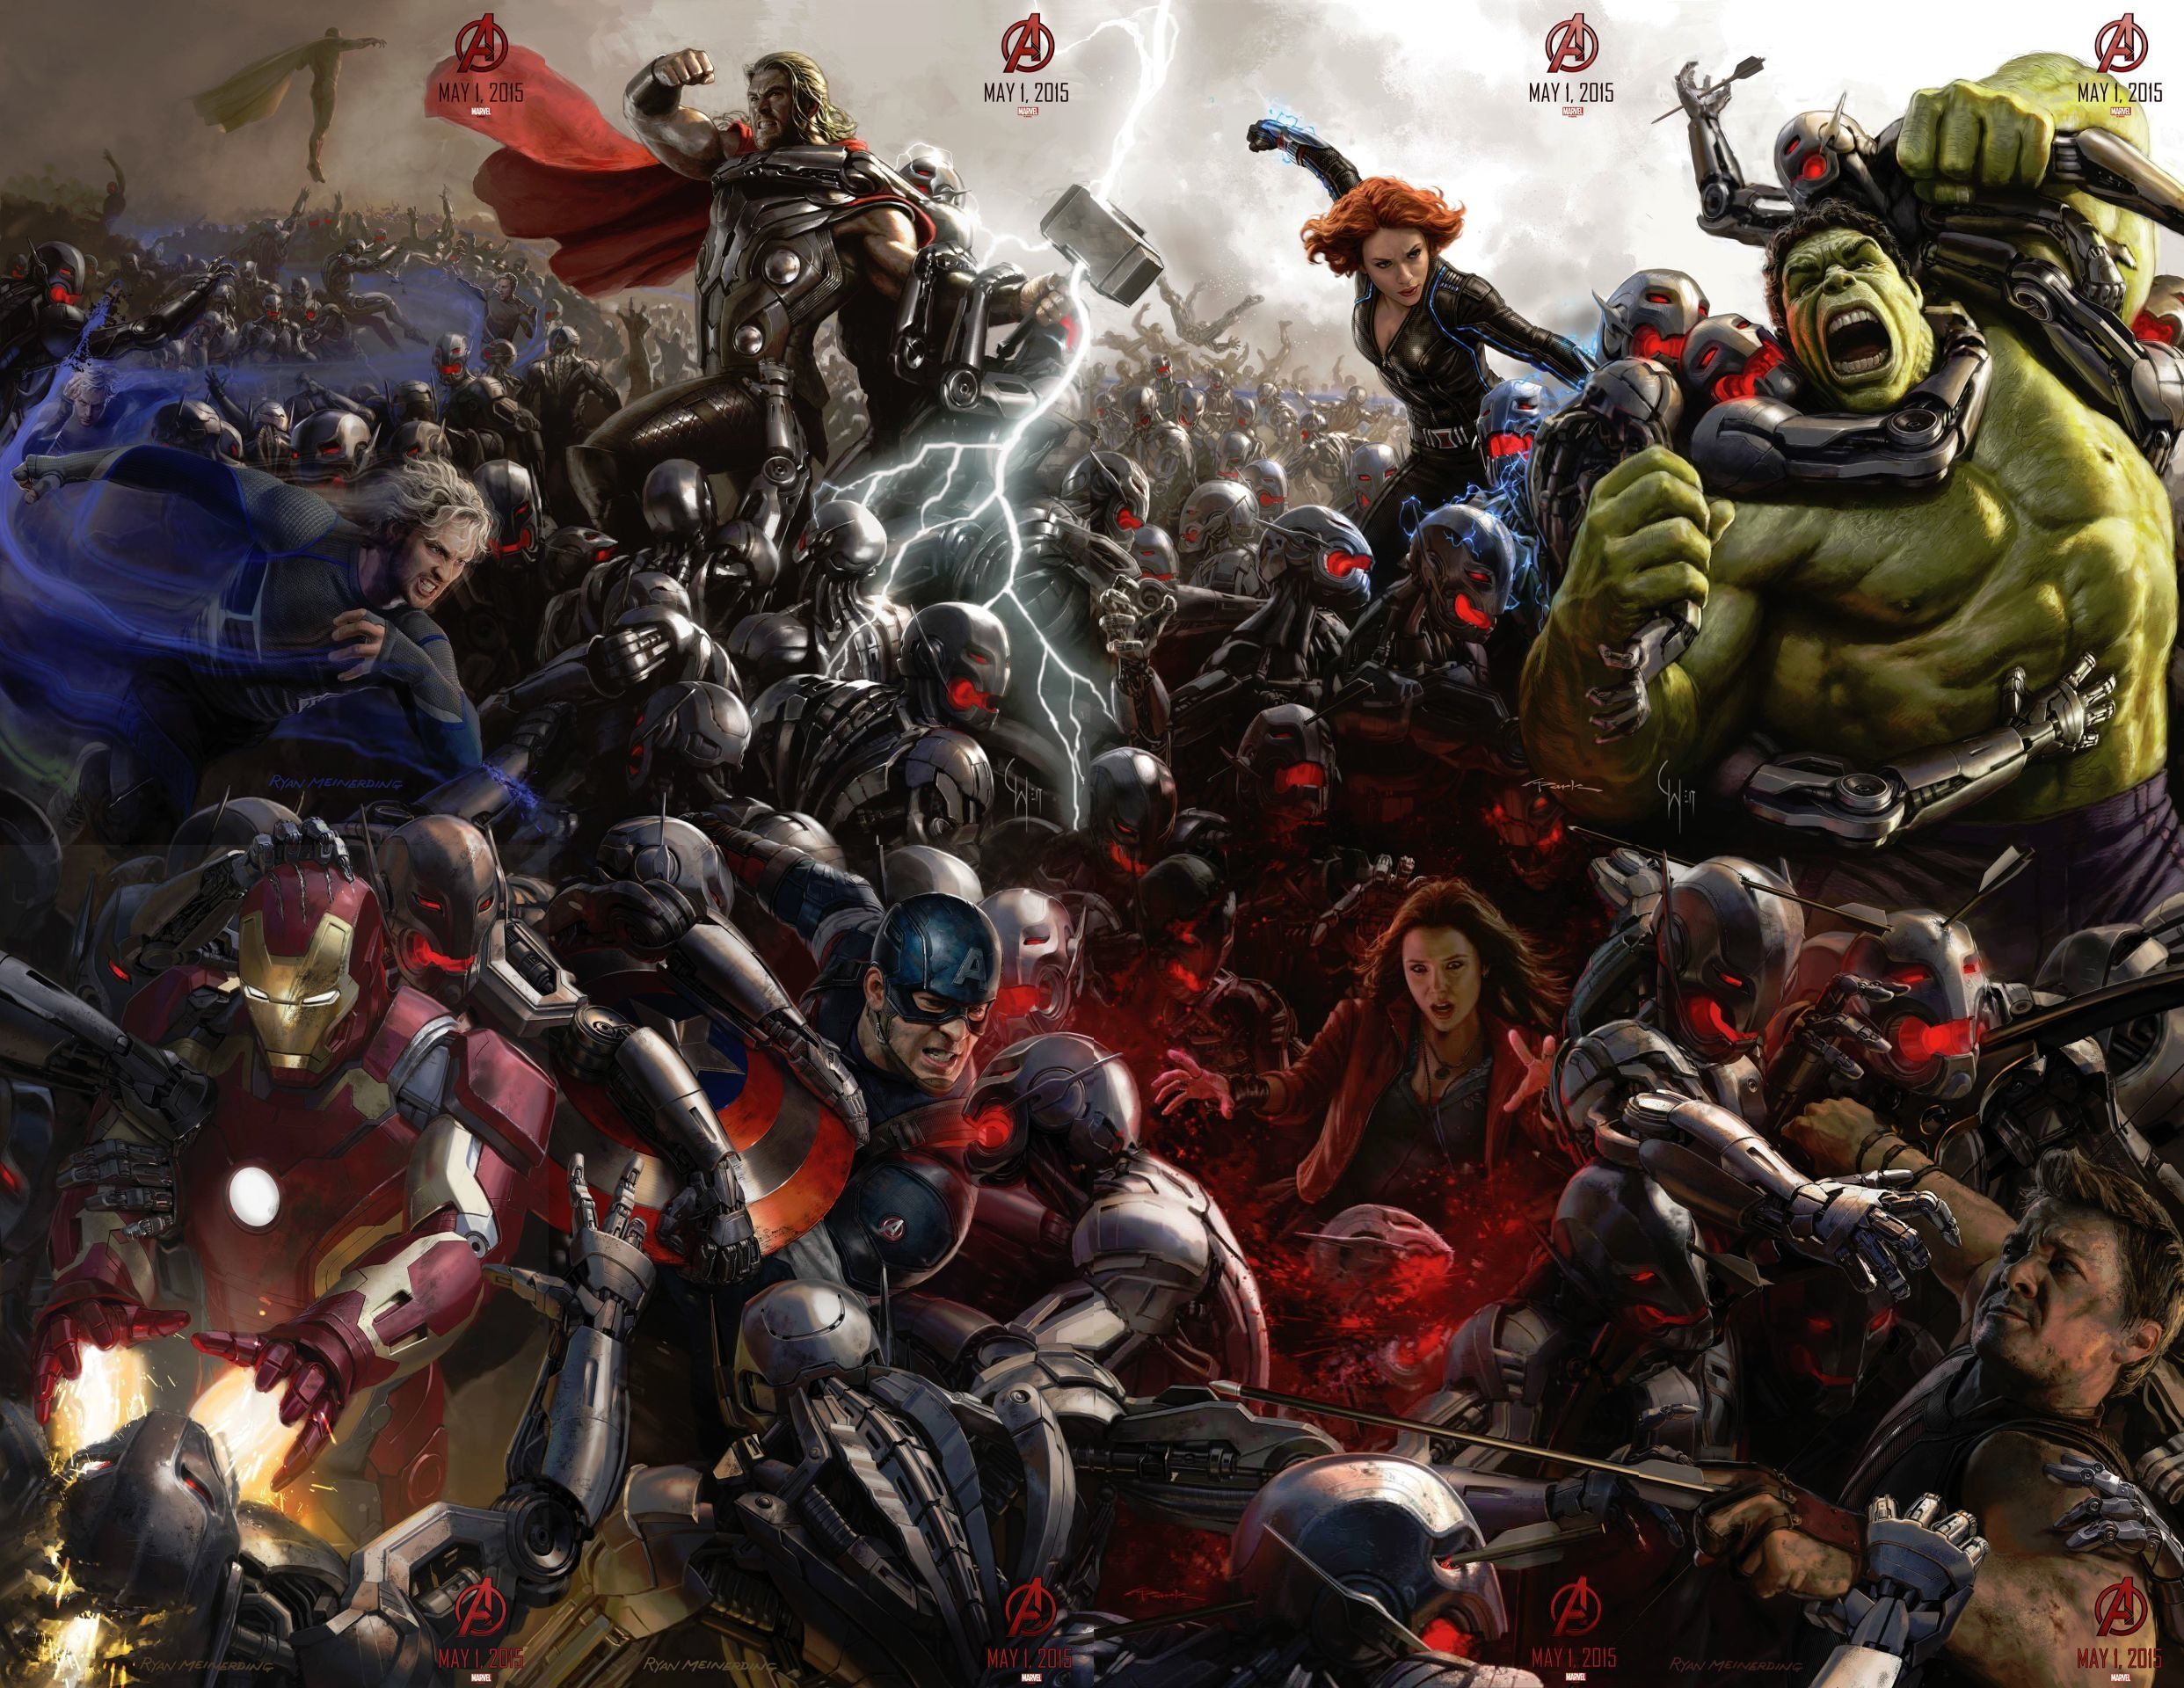 Avengers: Age of Ultron Concept Art Poster Revealed